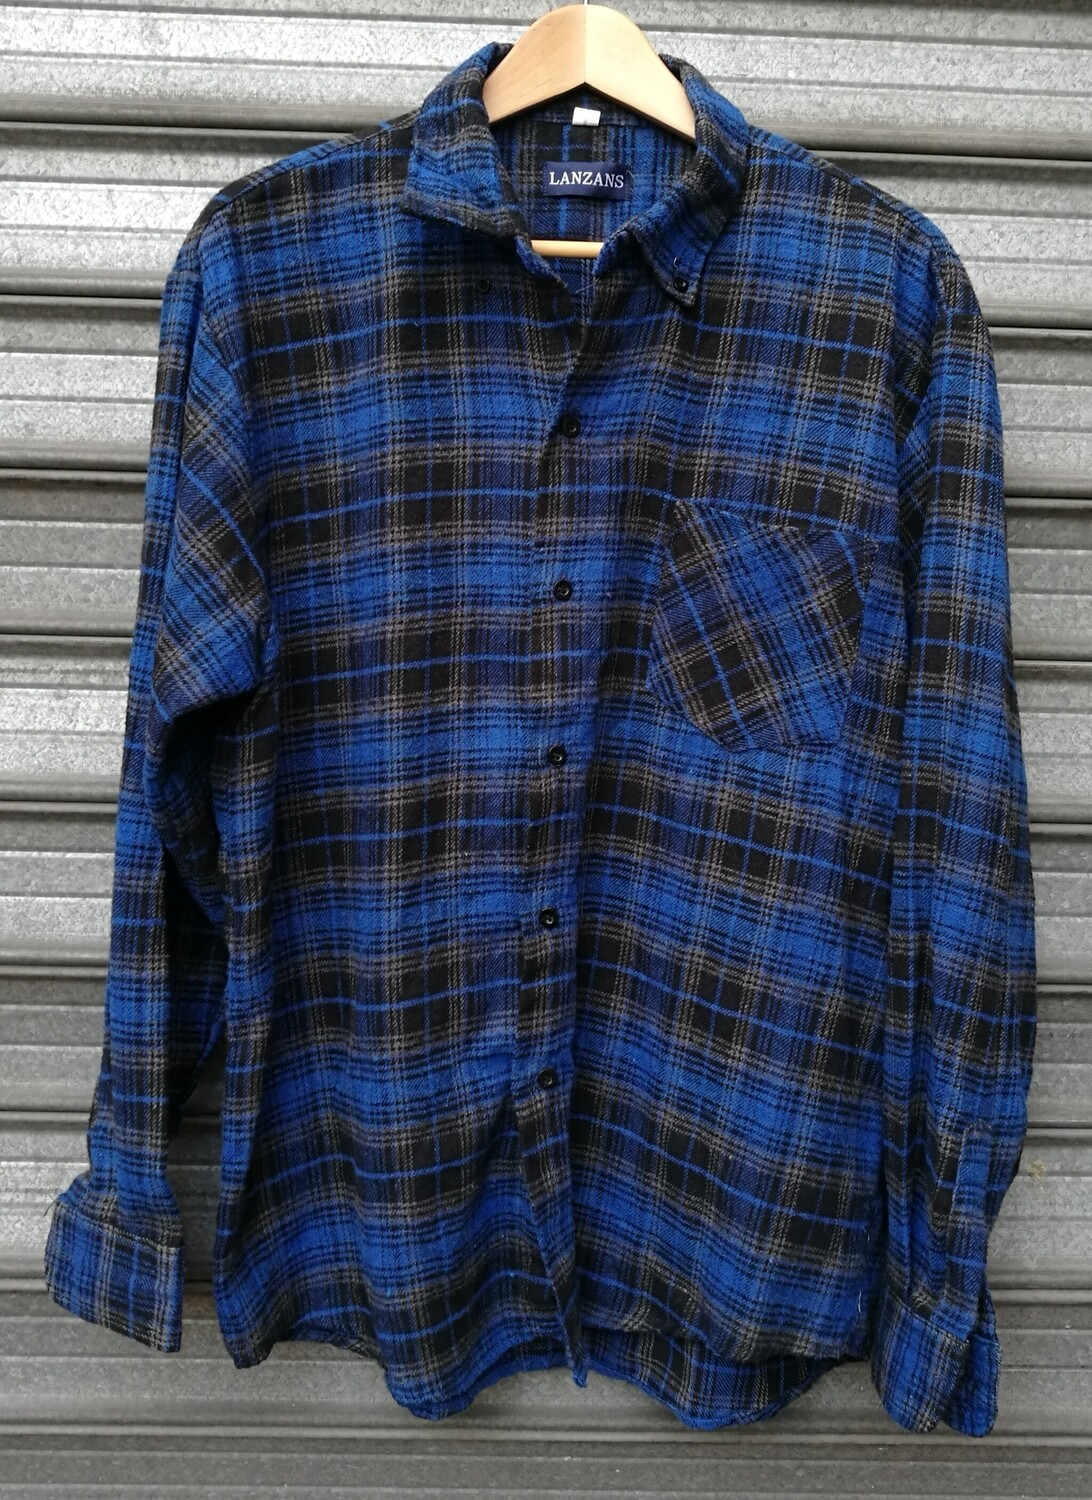 90's Flannel Plaid Shirt